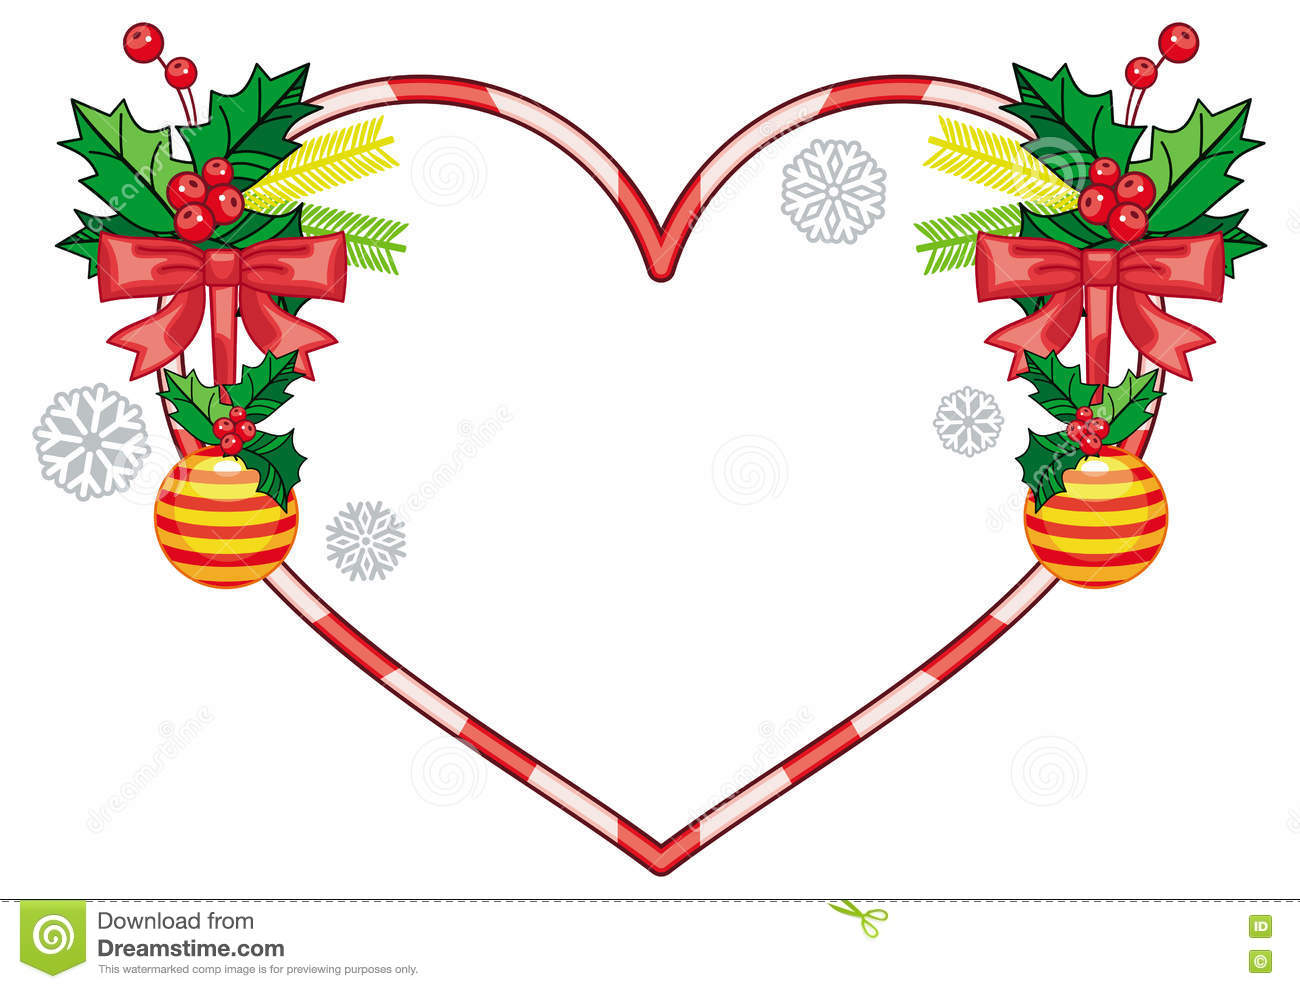 Heart shaped christmas wreath stock illustration